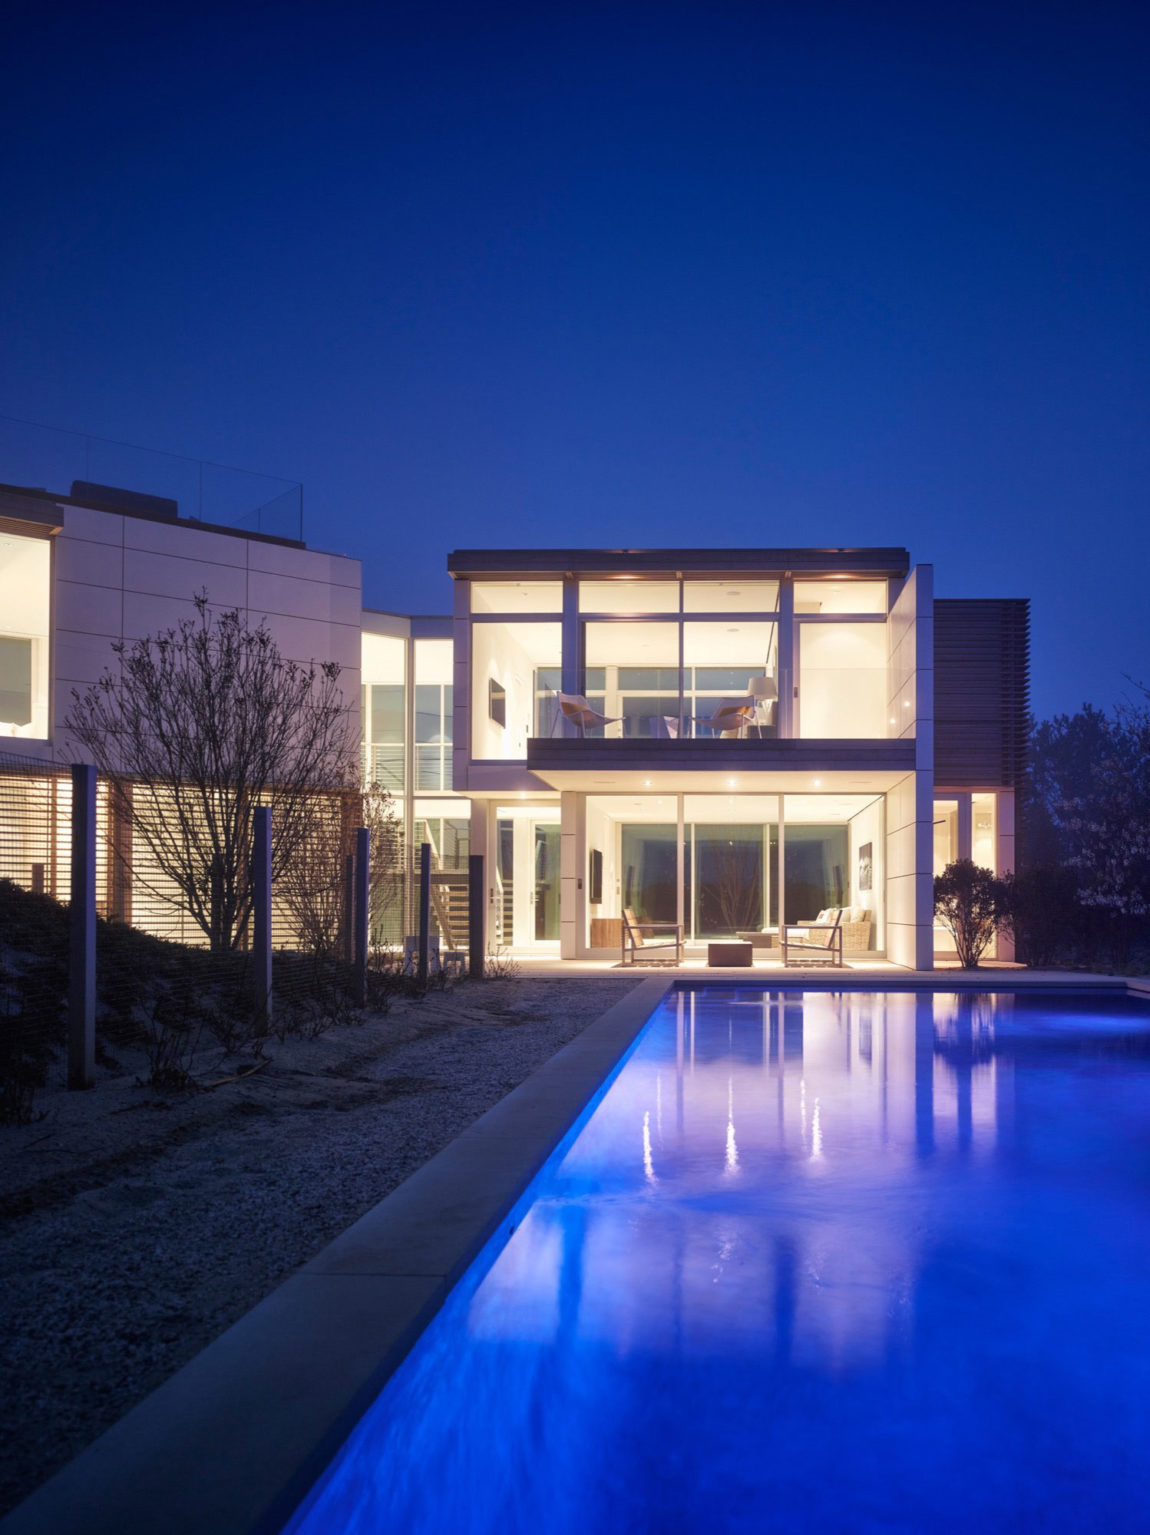 House in the Dunes by Stelle Lomont Rouhani Architects (26)